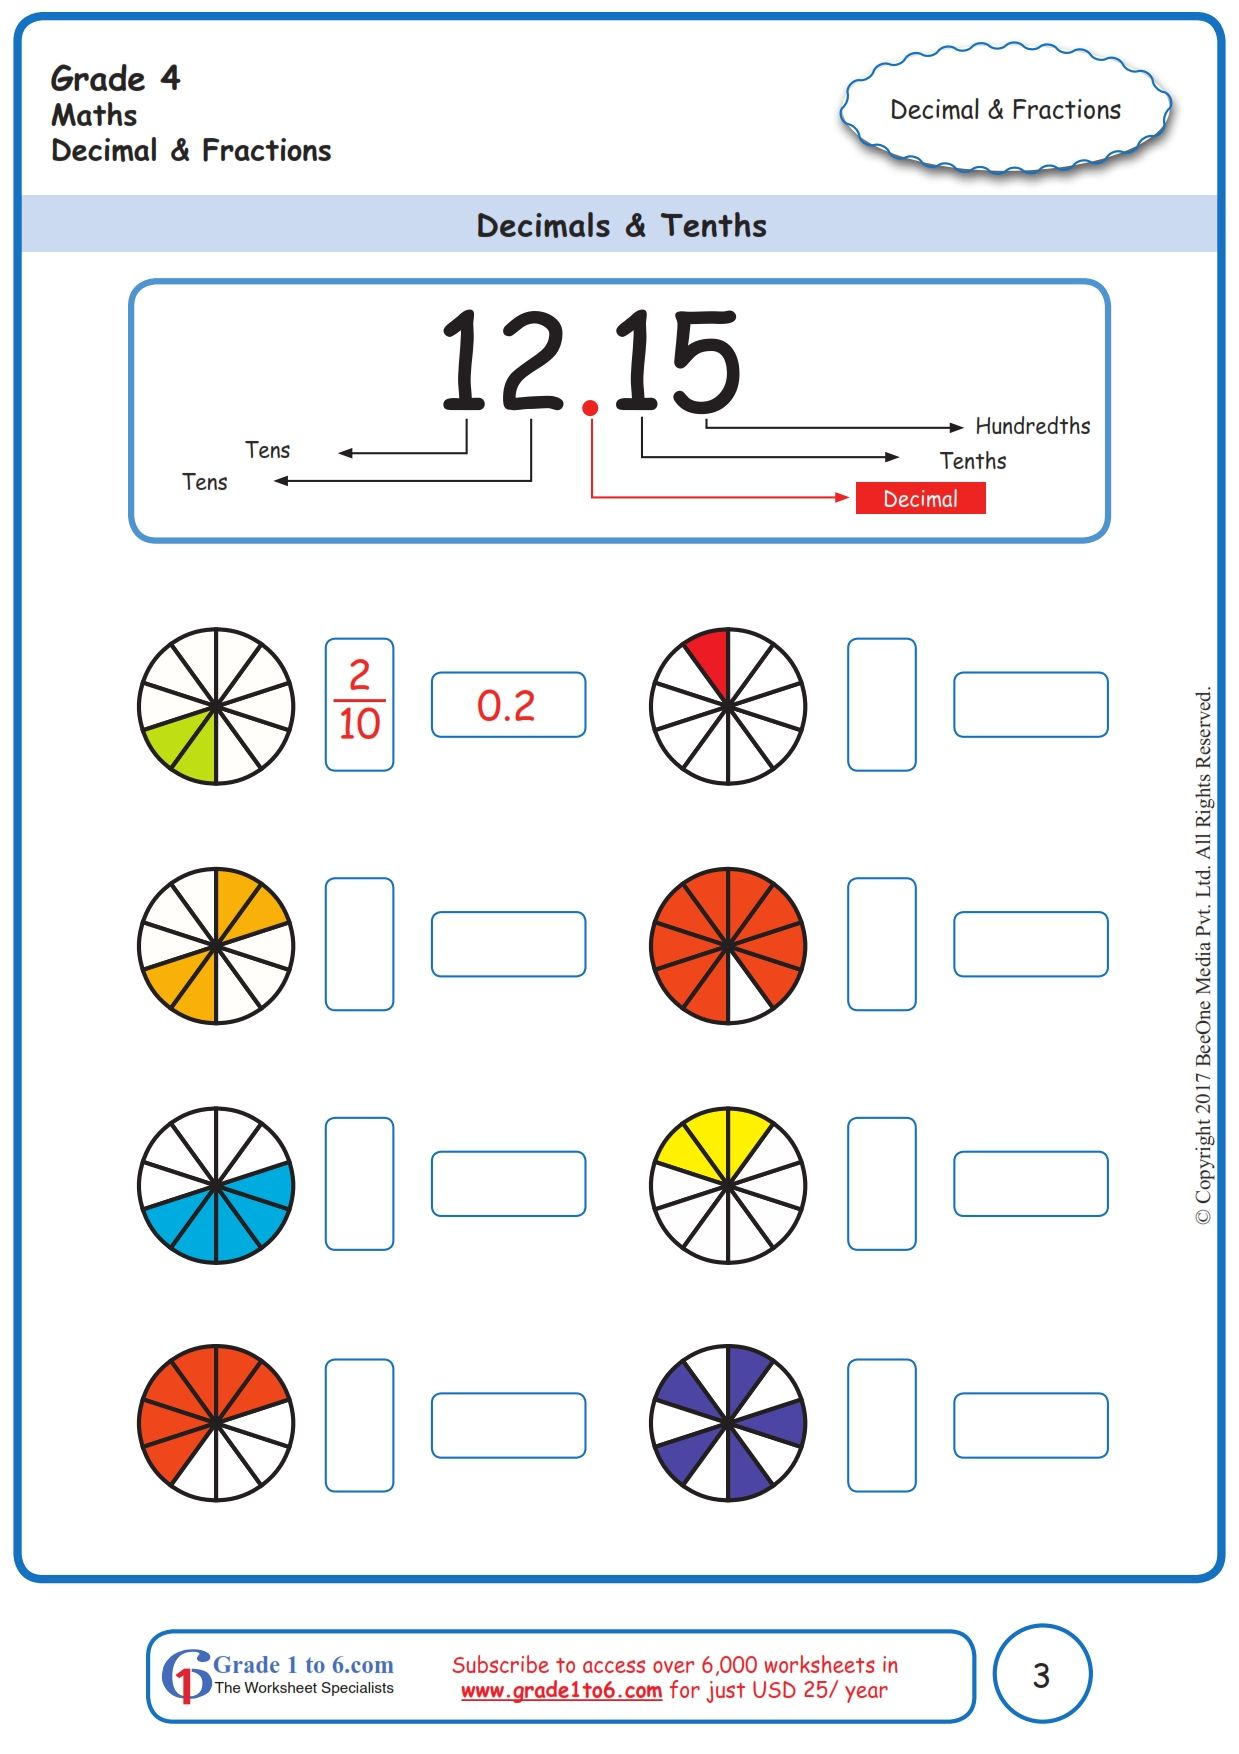 Worksheet Grade 4 Math Decimals Amp Tenths In